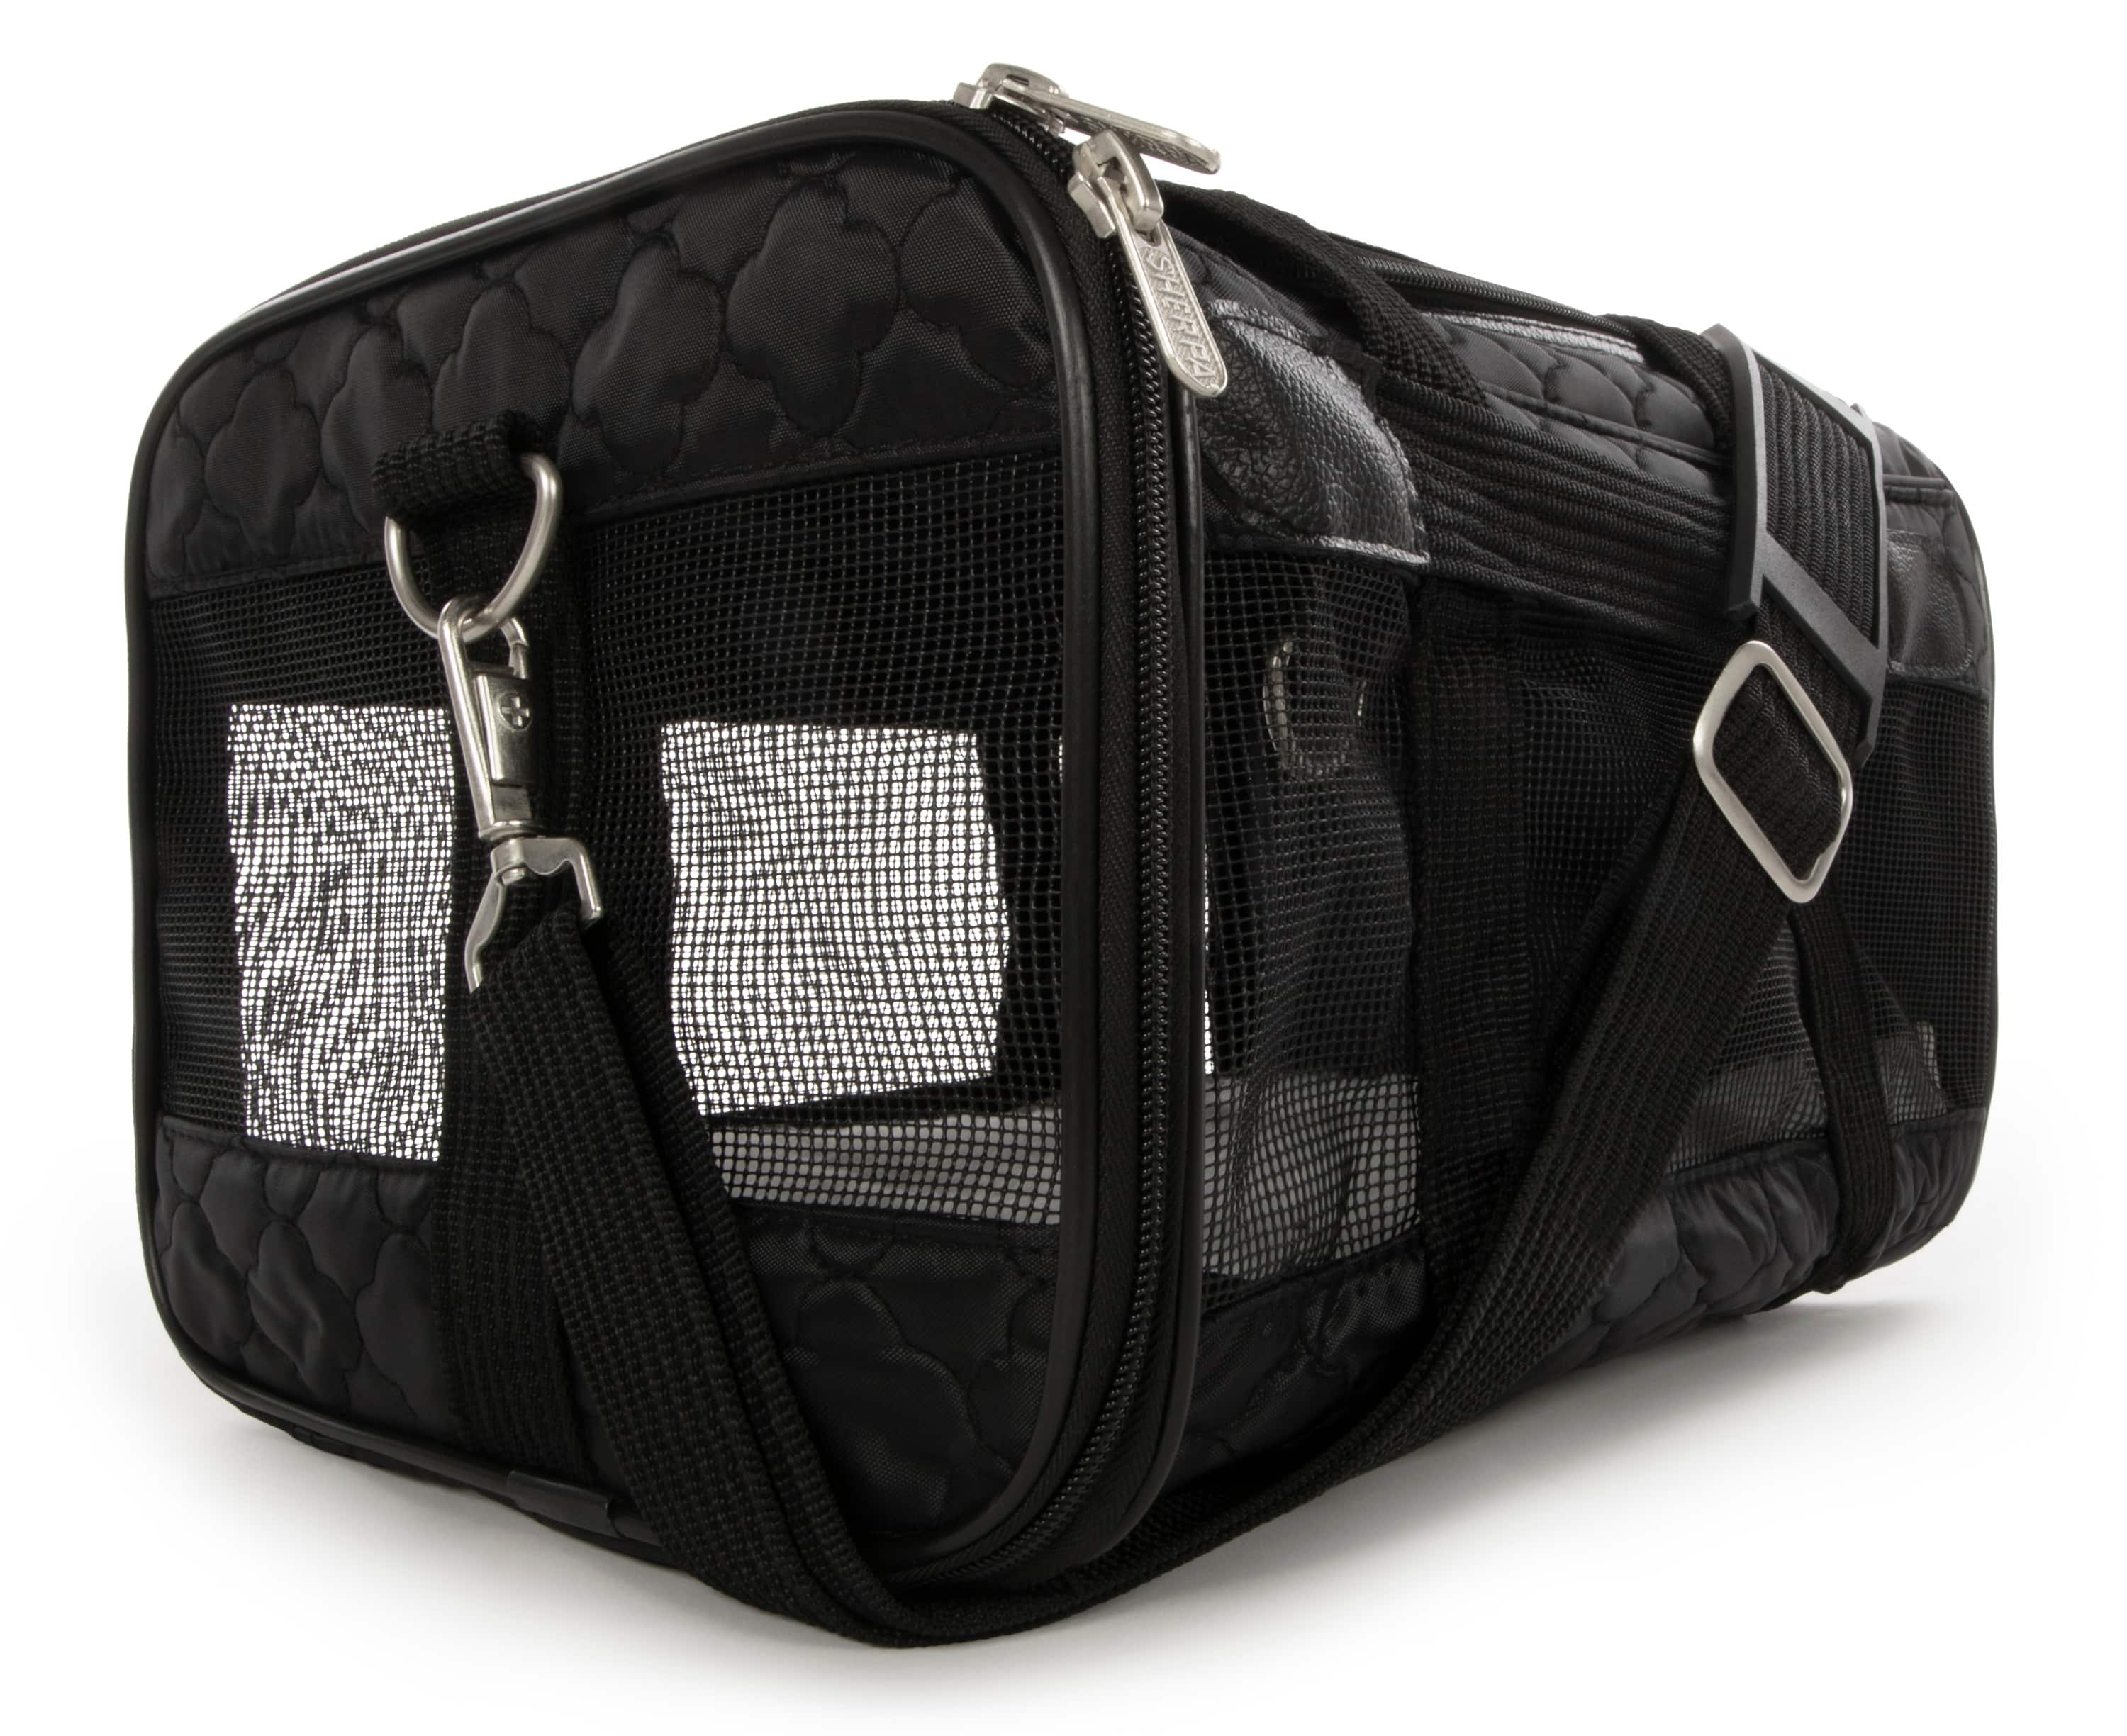 "goDog Sherpa Airline Approved Dog Carrier, Black, Small, 15""L $26.15"